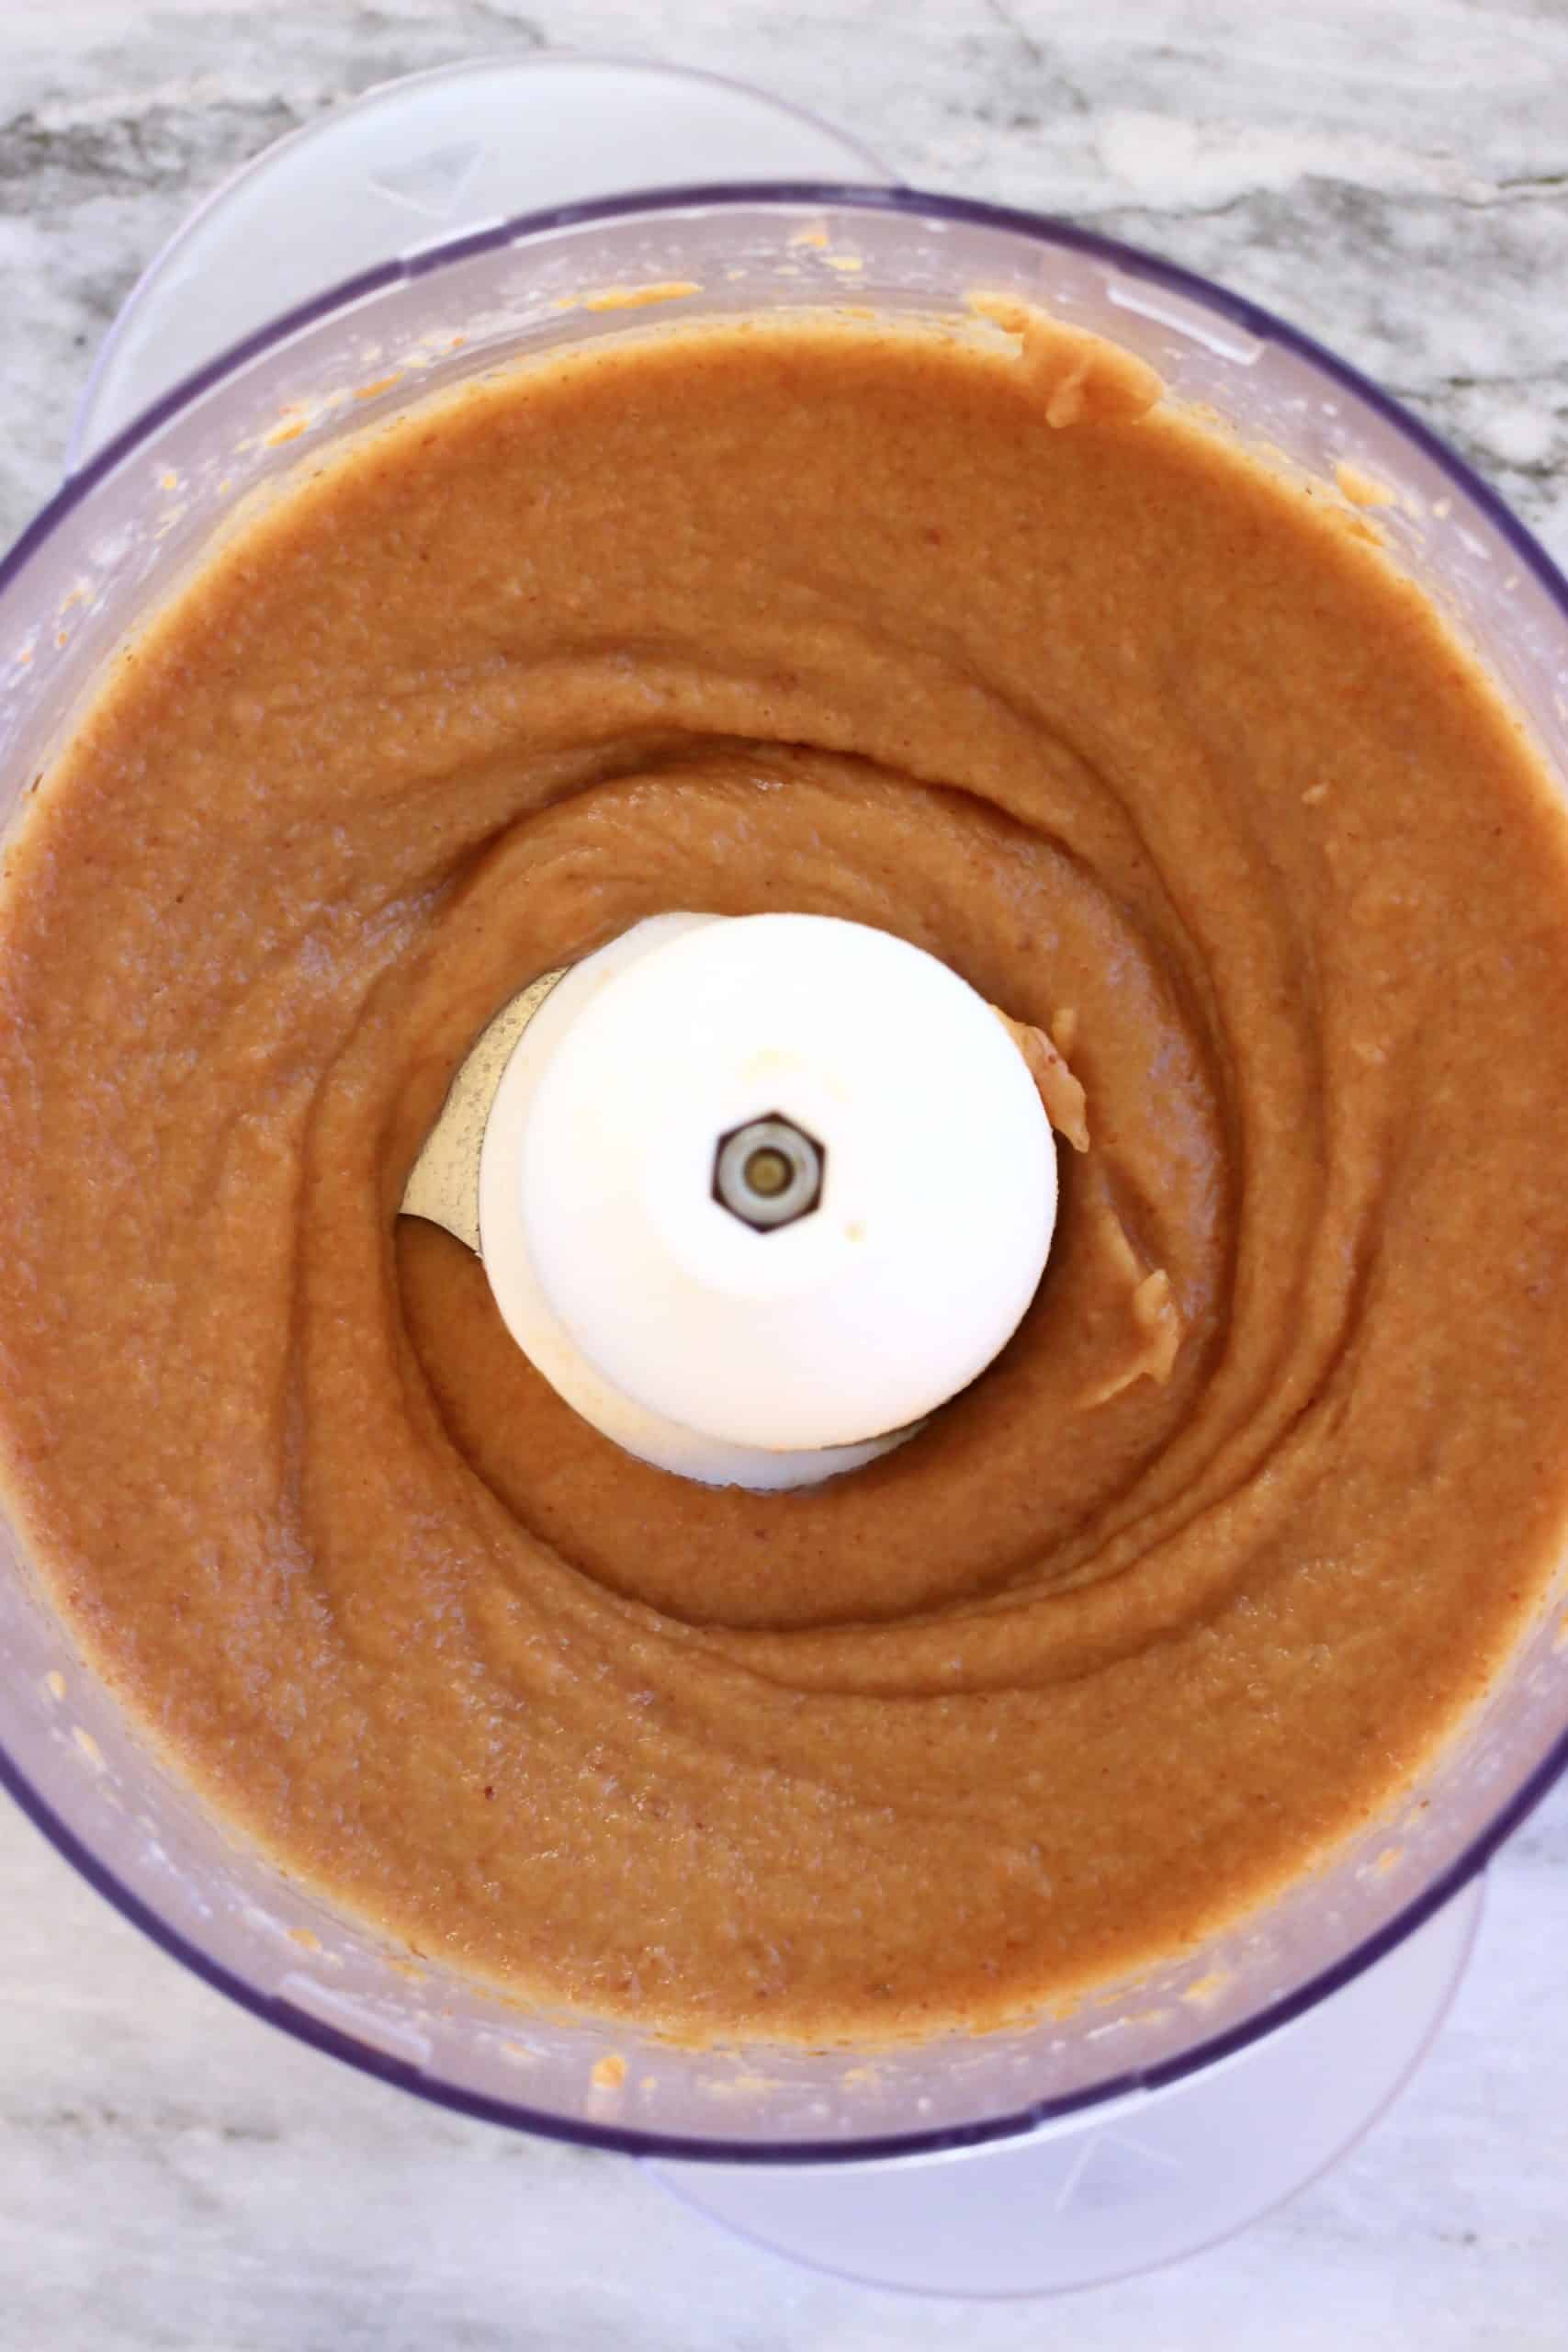 Blended date purée in a food processor